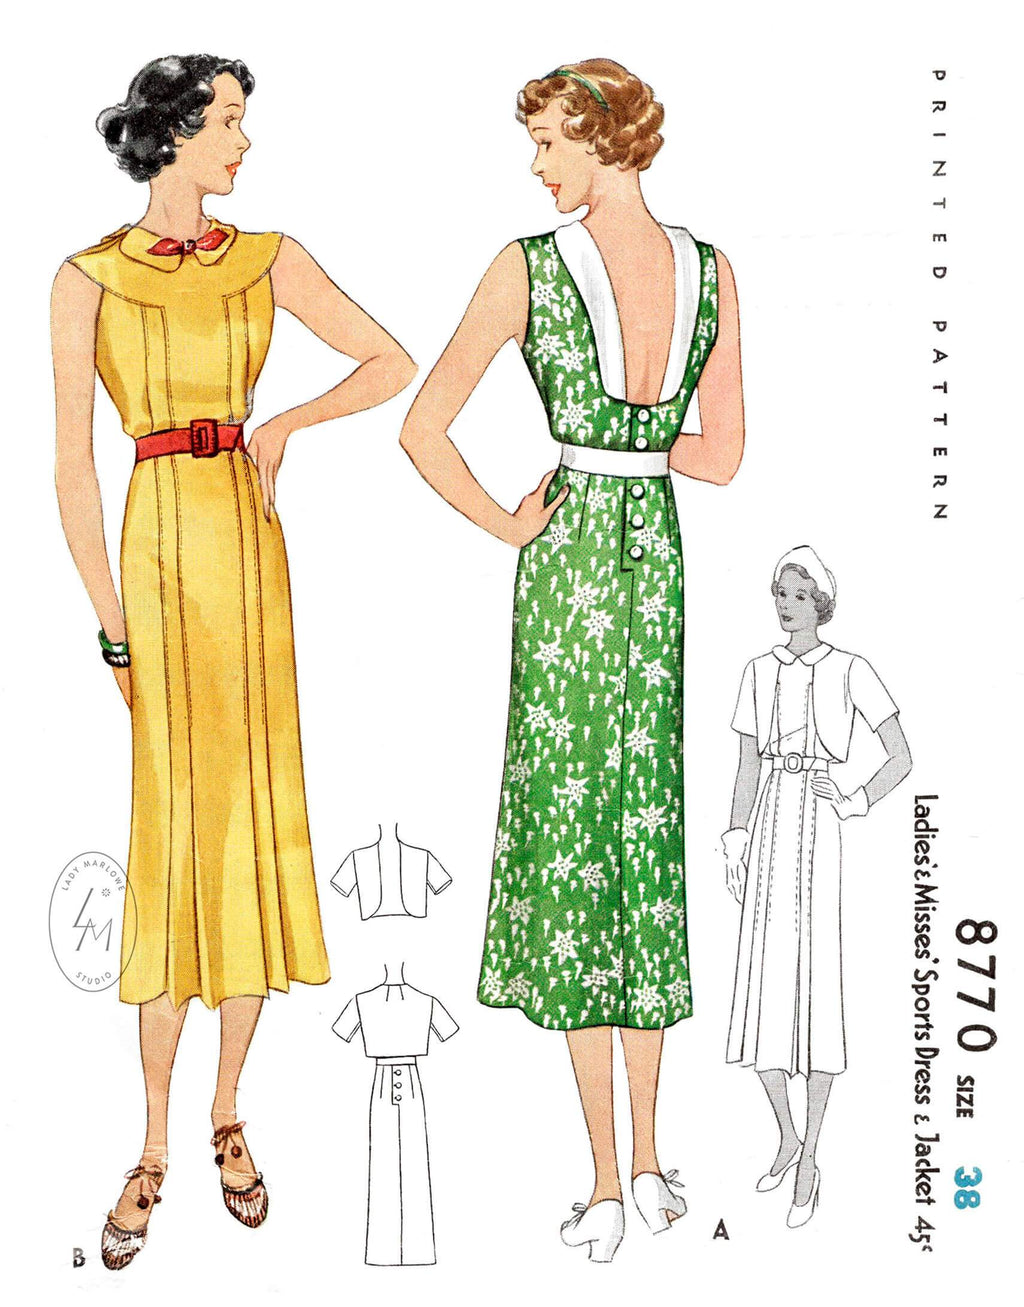 1930s 1936 sports dress & bolero jacket pattern McCall 8770 deep u back neckline knife pleats vintage sewing pattern reproductions